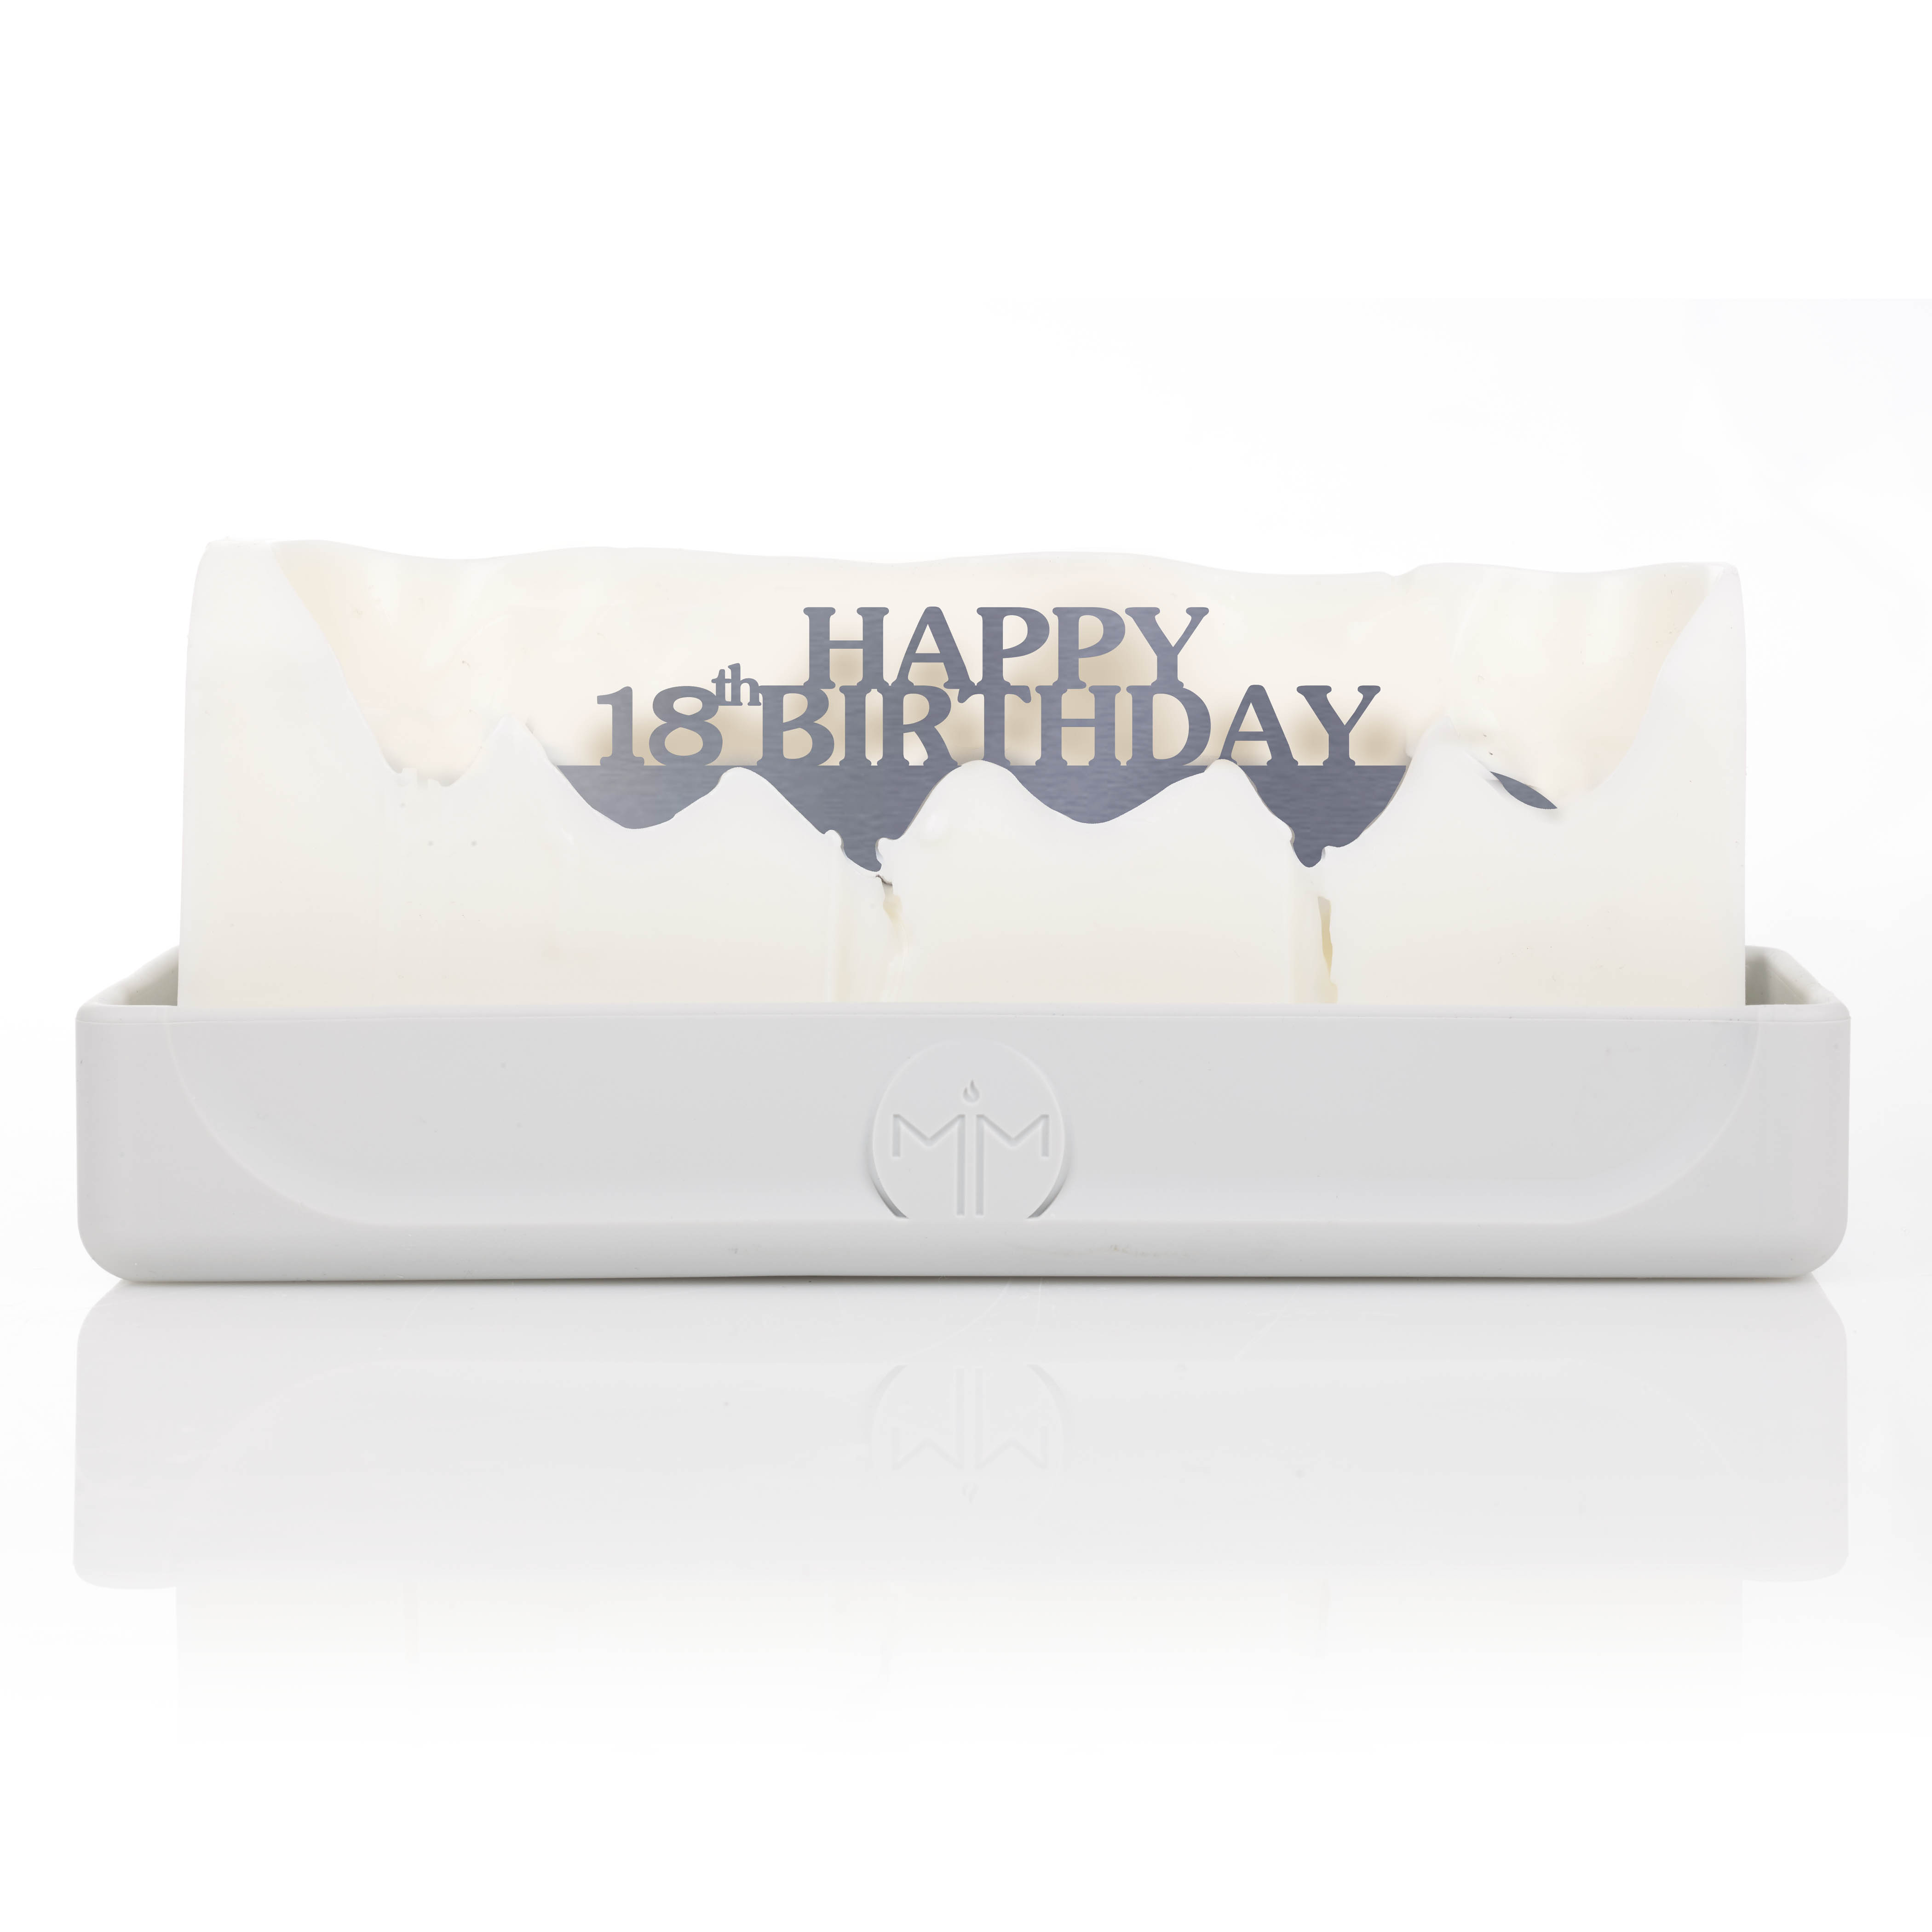 Happy 18th Birthday Melting Messages Candle From Design Essentials In Saffron Walden Great Gift Idea